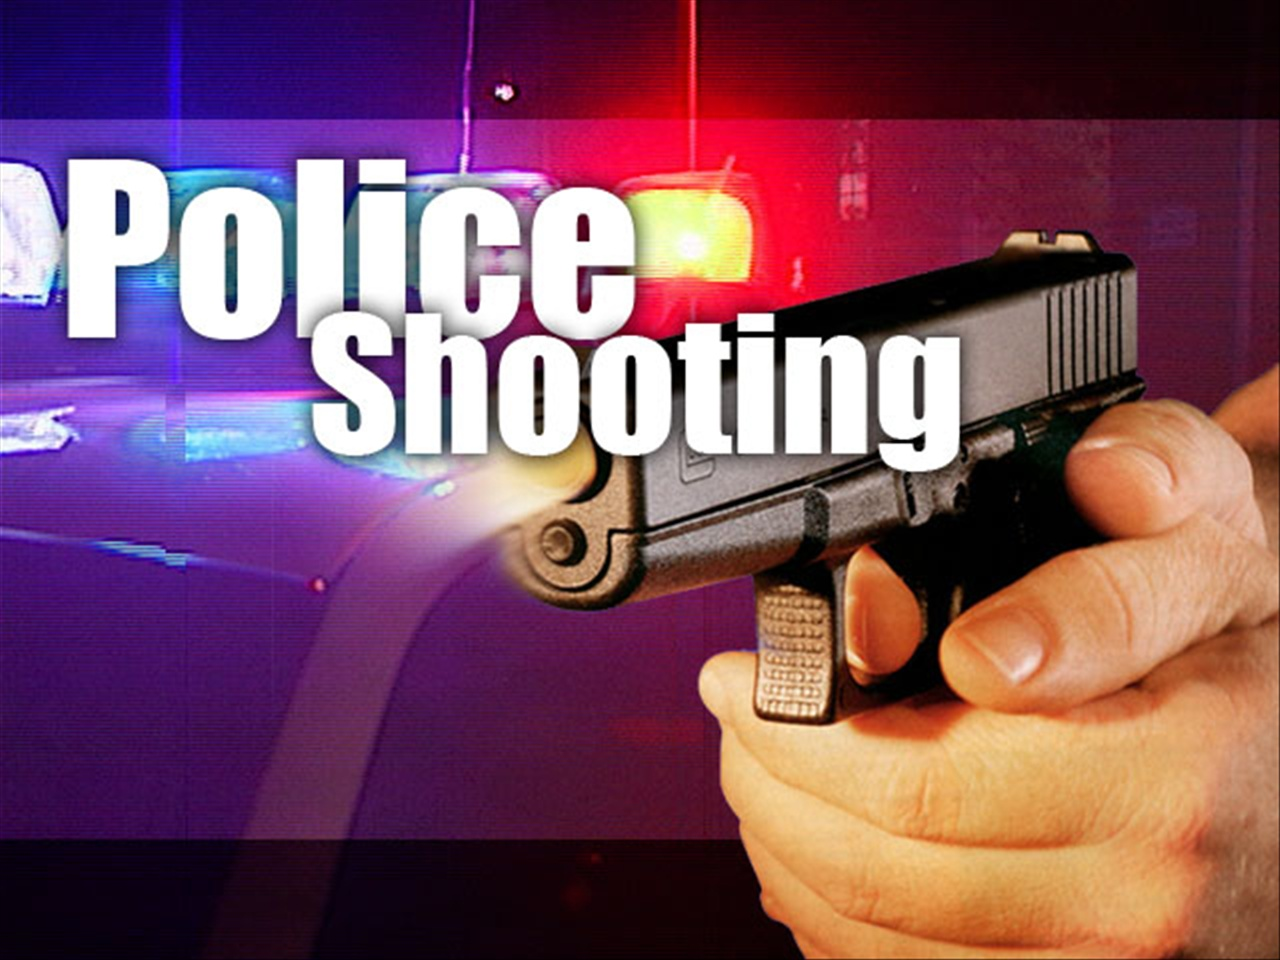 Kansas City Police are investigating on officer involved shooting